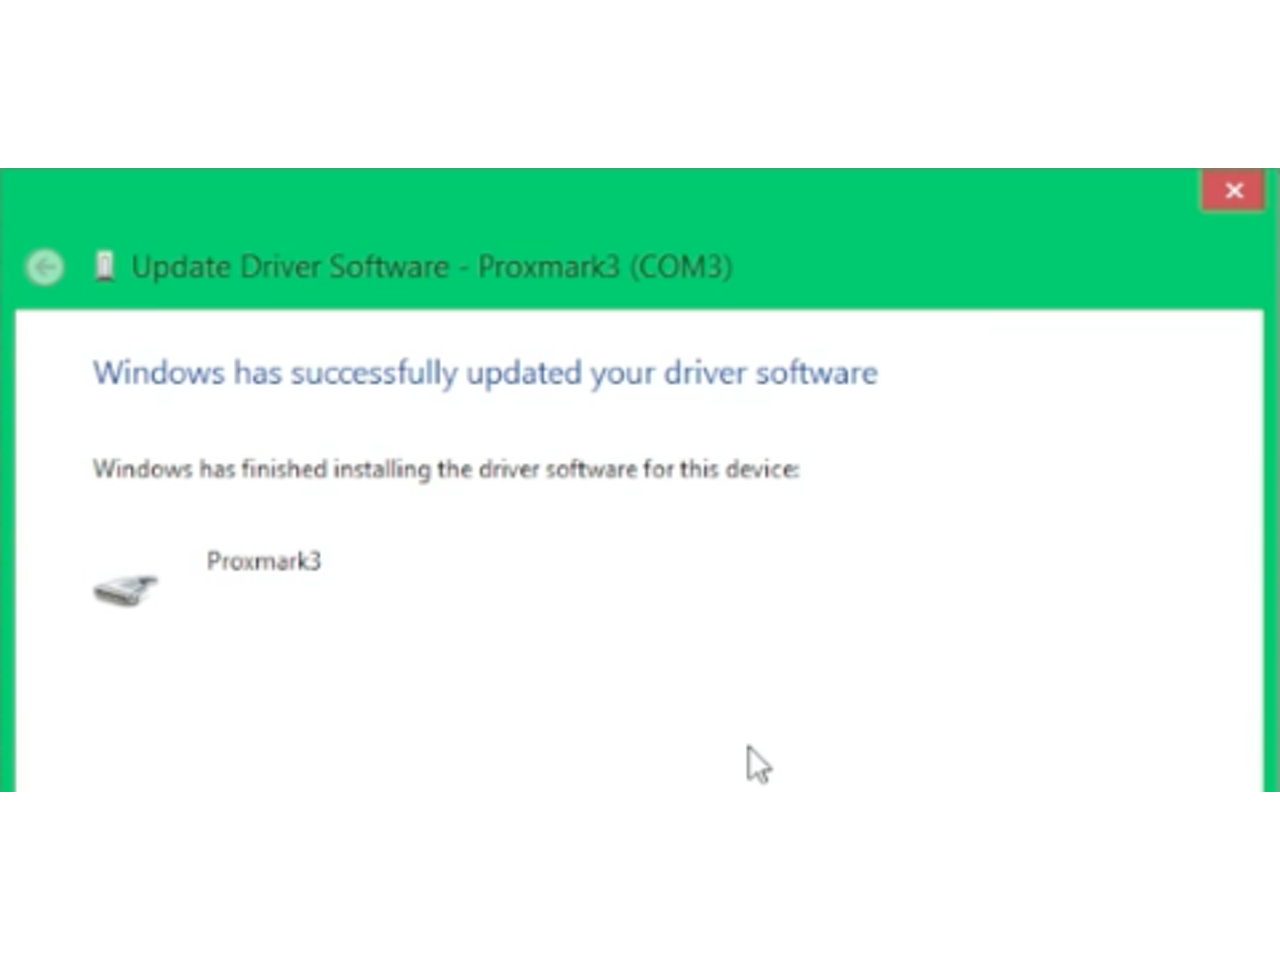 How to install a Proxmark3 Driver on Windows 8.1